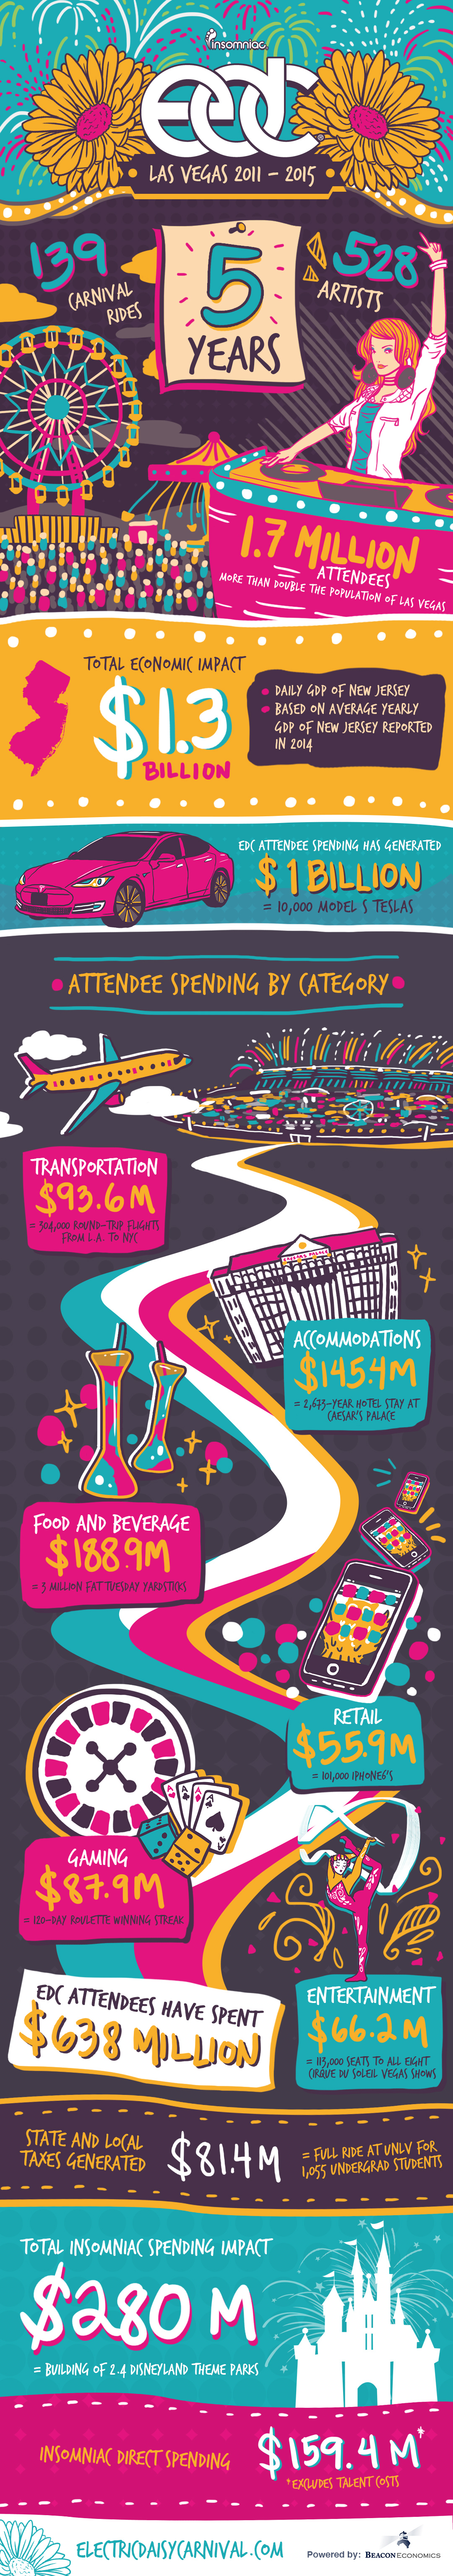 EDC Las Vegas 2015 Economic Impact Infographic